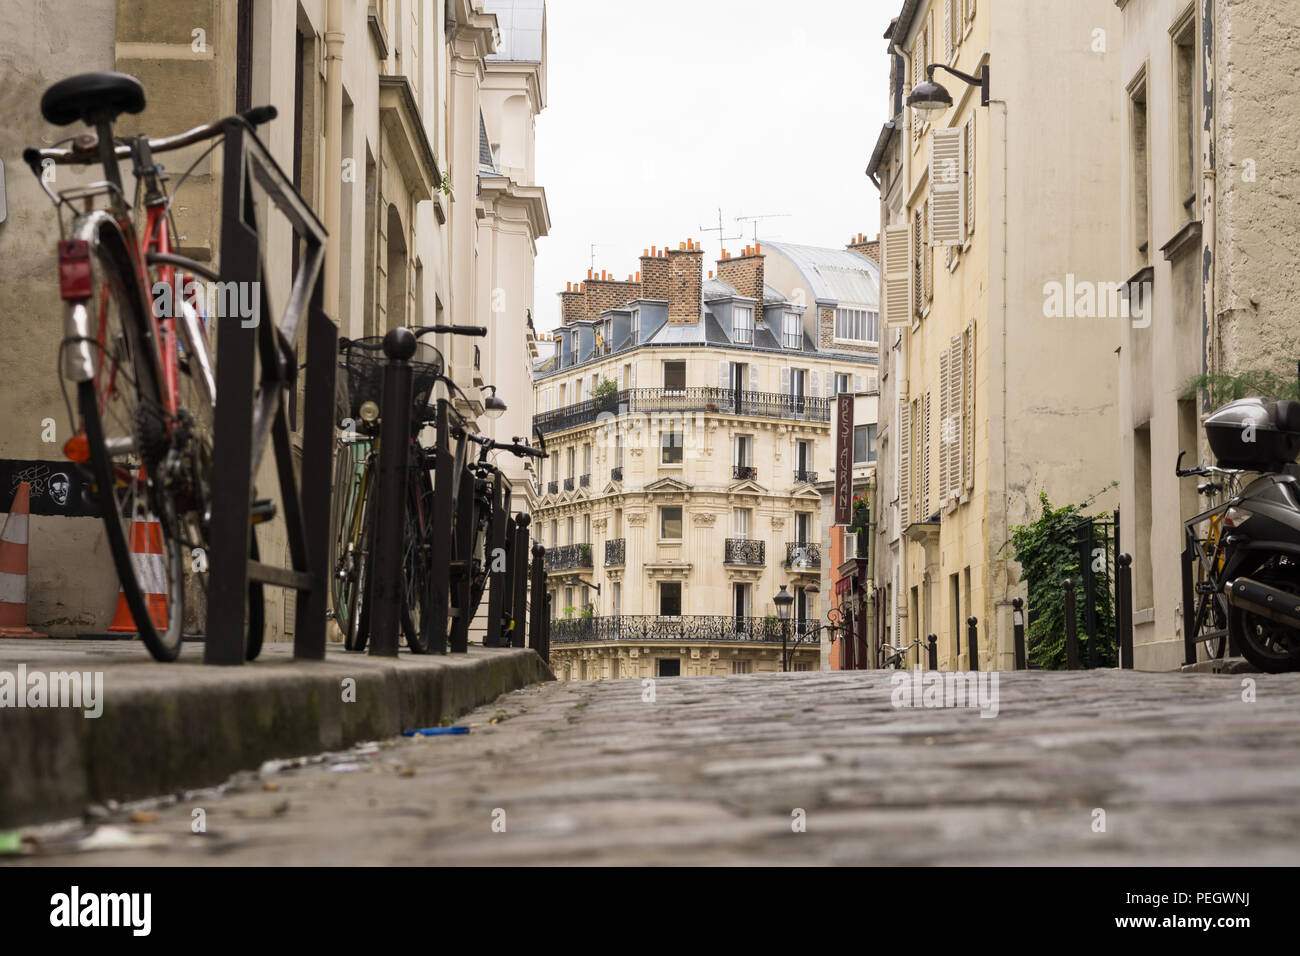 Paris street - Low angle view of a street in the Latin Quarter. - Stock Image